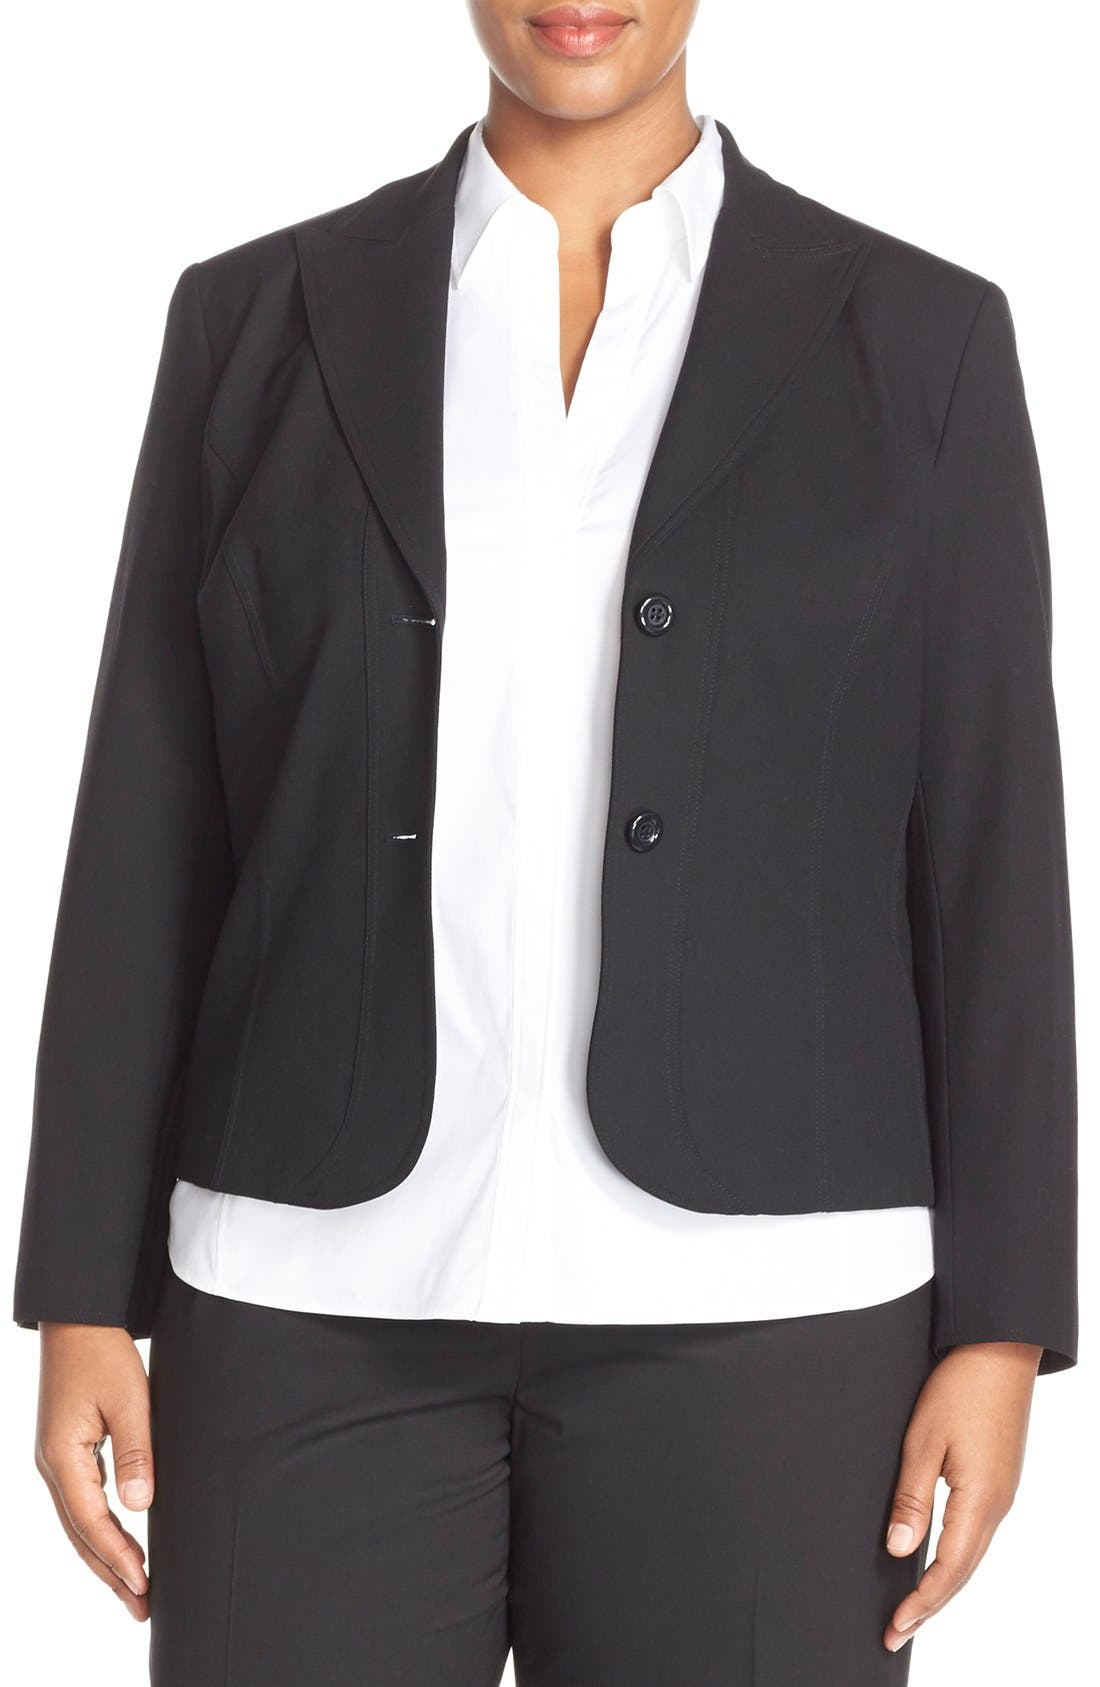 'Gladstone' Stretch Wool Jacket,                             Main thumbnail 1, color,                             001